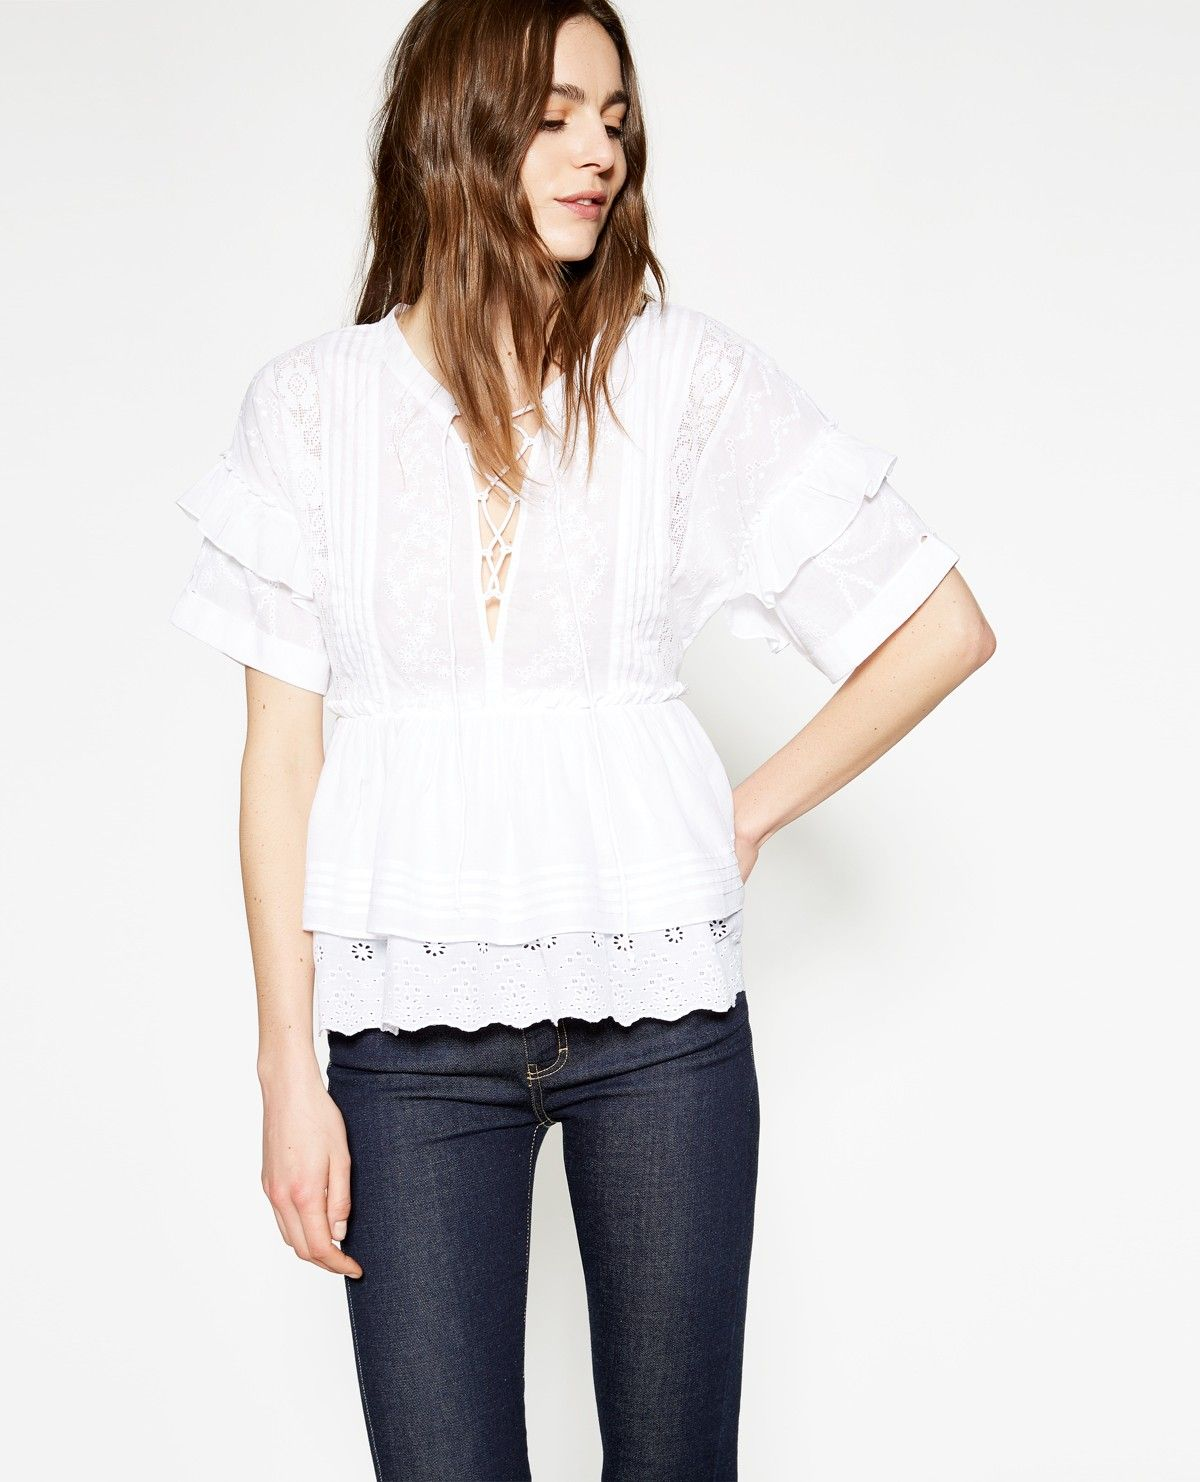 3648eae2e27 ... tops femme - Vêtements outlet The Kooples Femme. White cotton broderie  anglaise top - TOP WOMAN